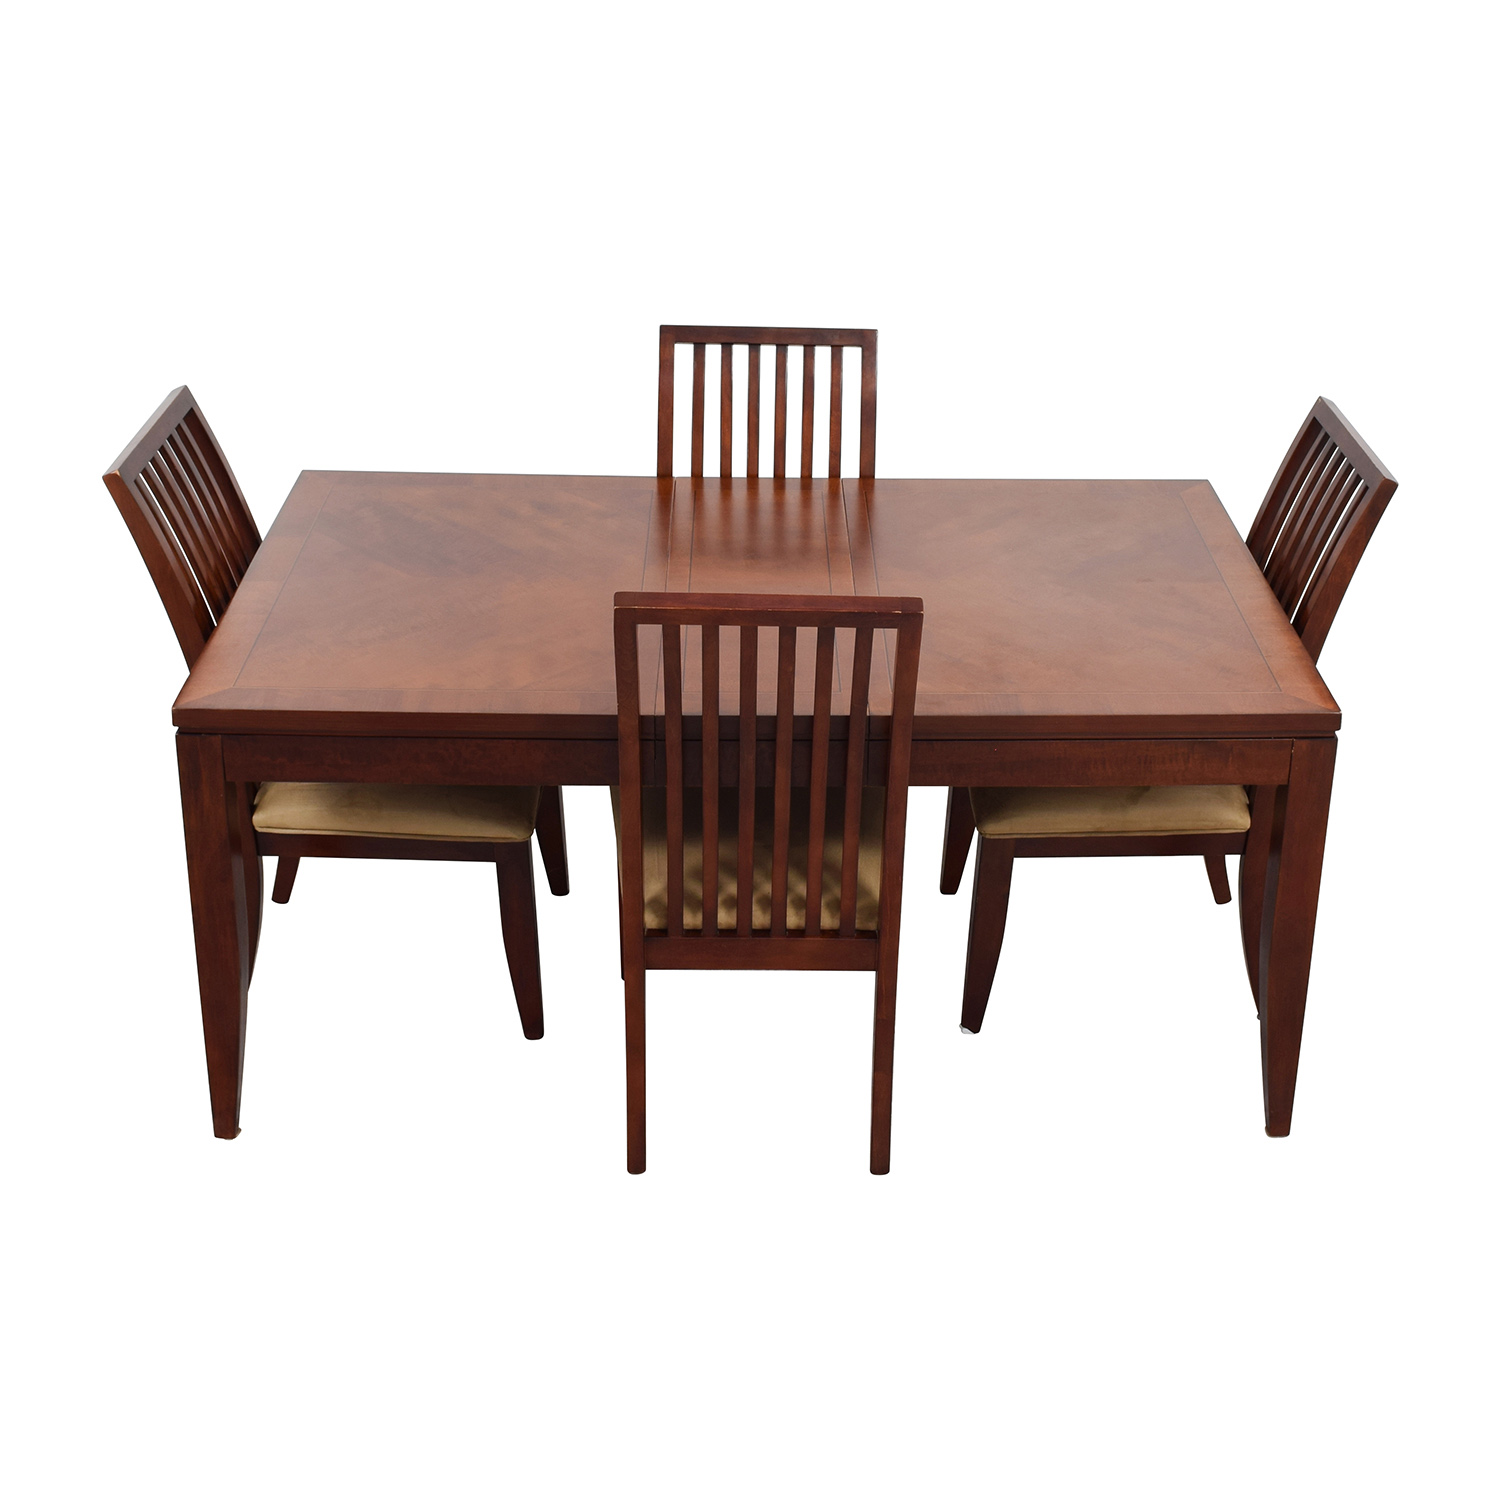 macys dining chairs 4 chair table set 84 off macy 39s metropolitan with four